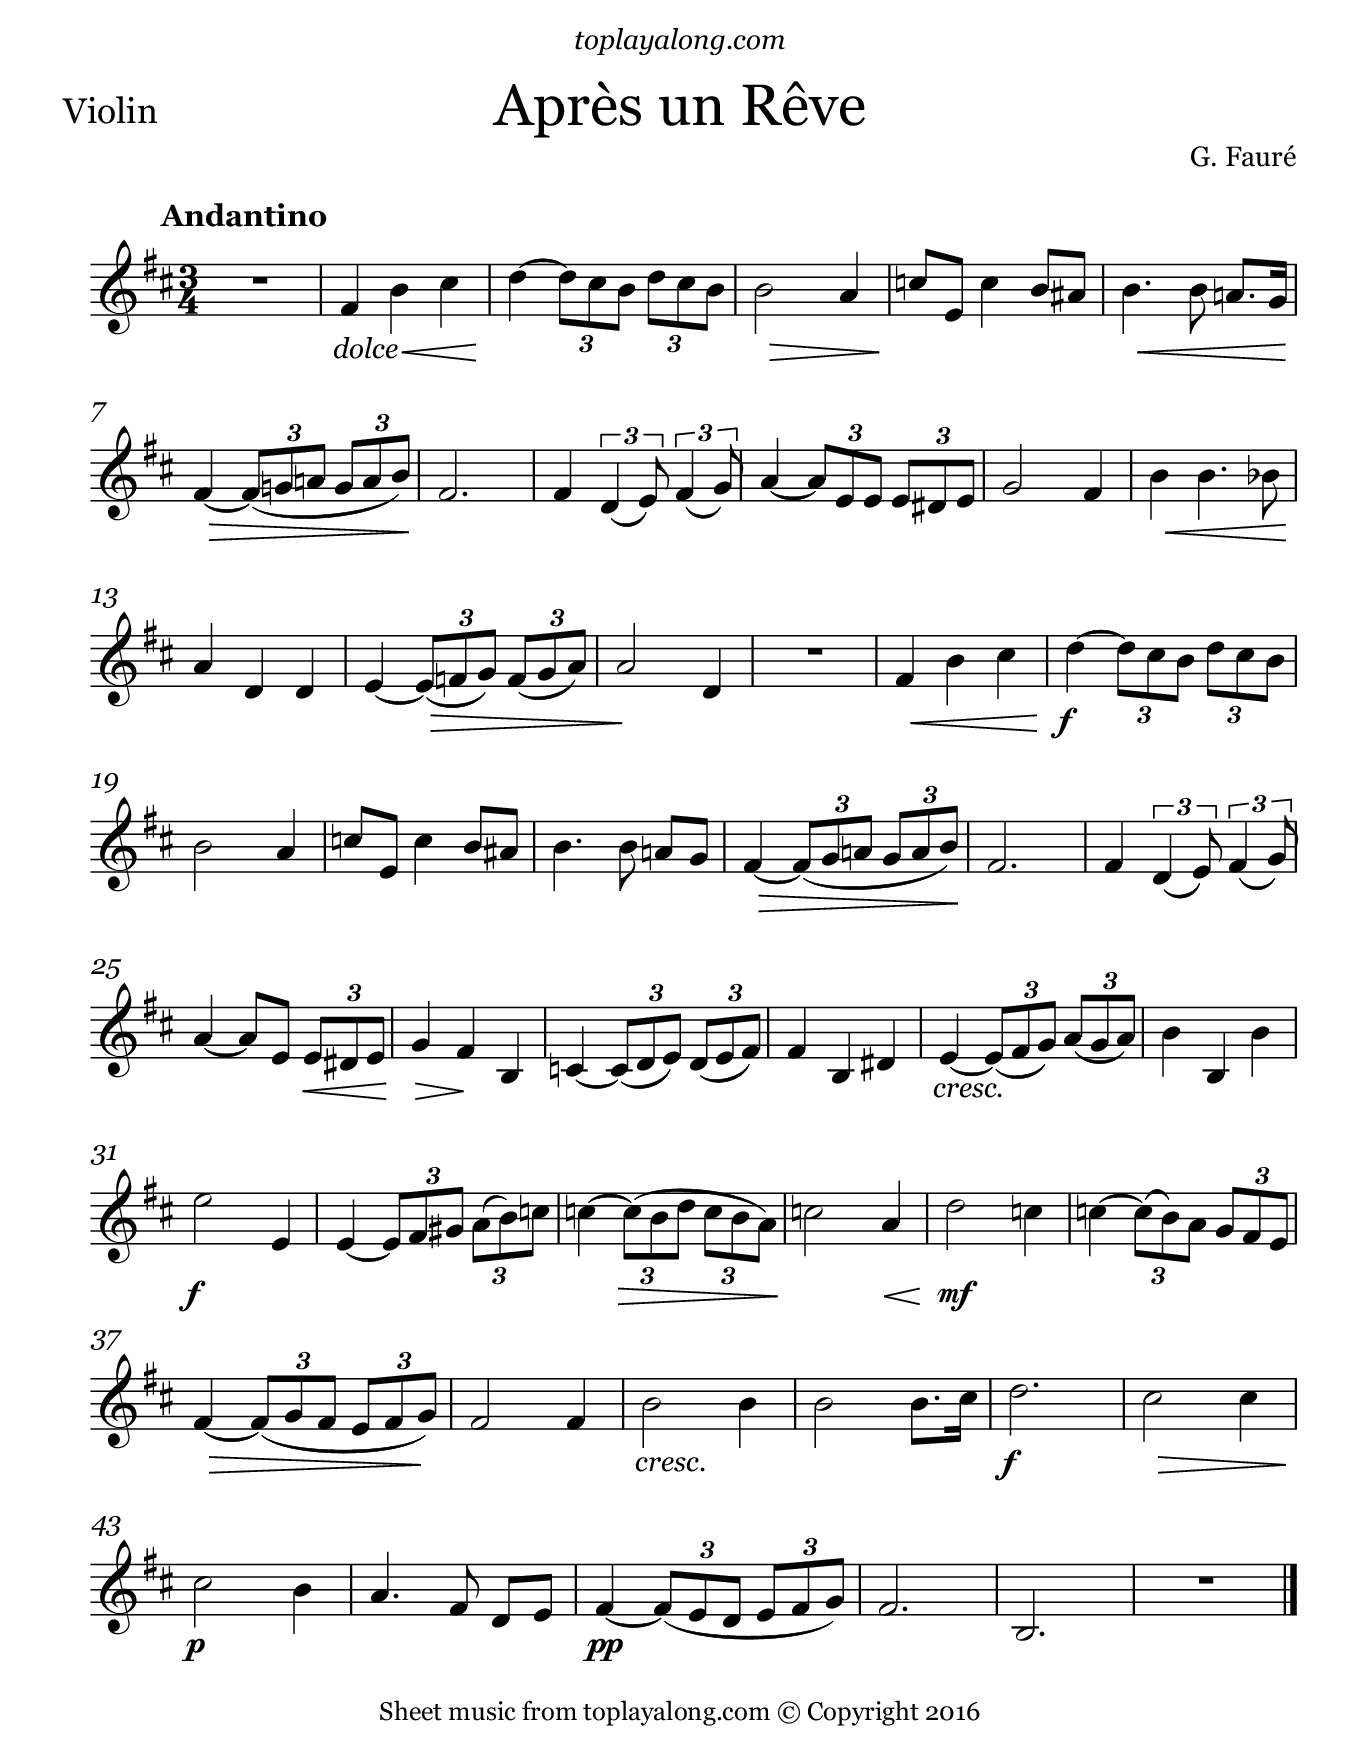 Après un rêve by Fauré. Sheet music for Violin, page 1.